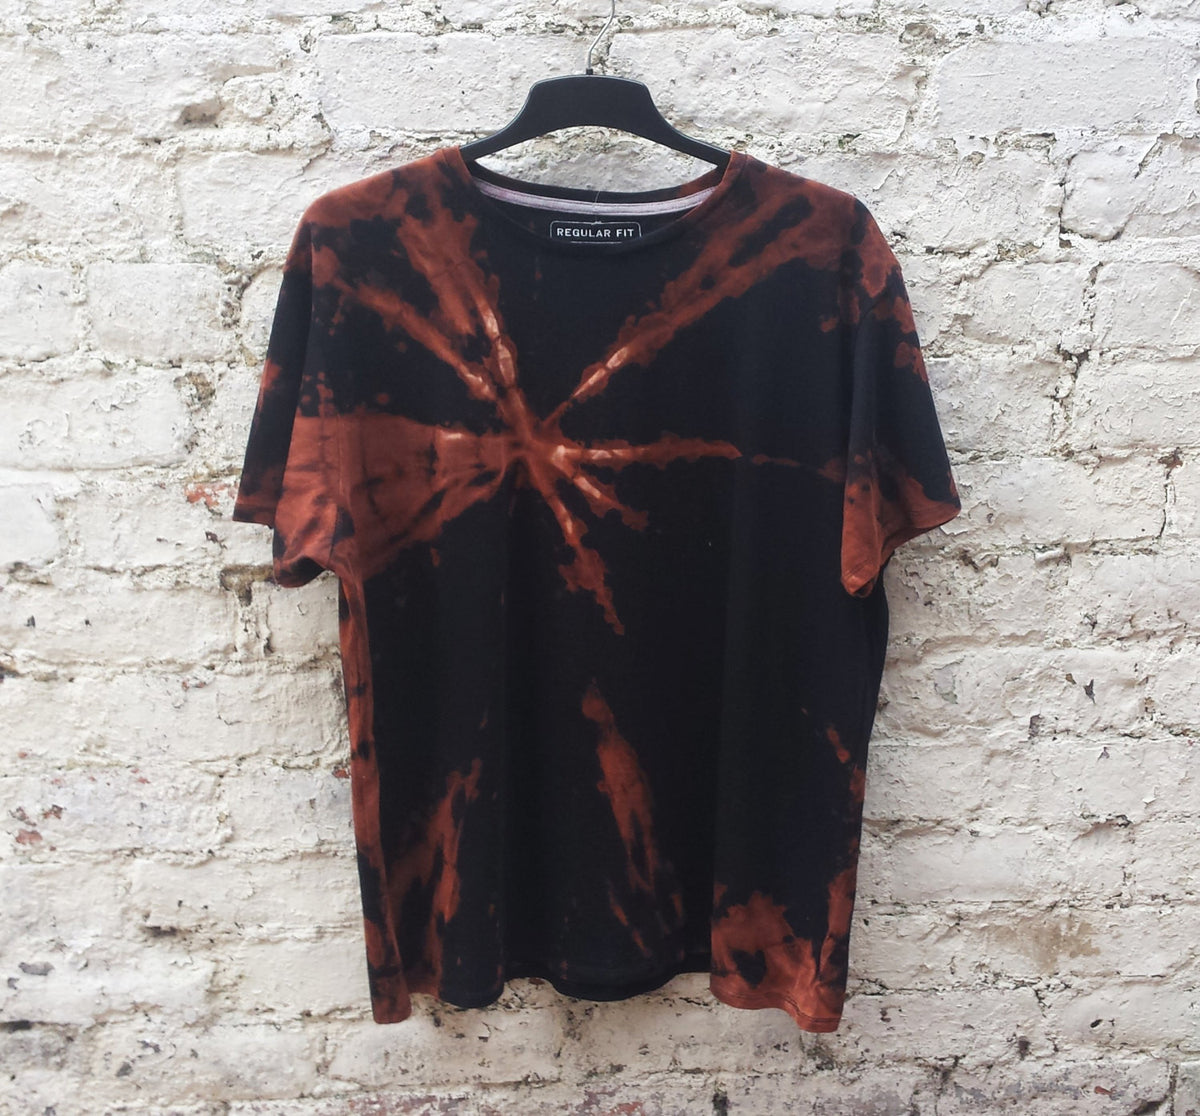 Mens Tie Dye Shirt Bleach Dye Hippie Tshirt Unisex T-shirt All Sizes Available Black & Orange Festival Clothing Trippy Psychedelic Clothing